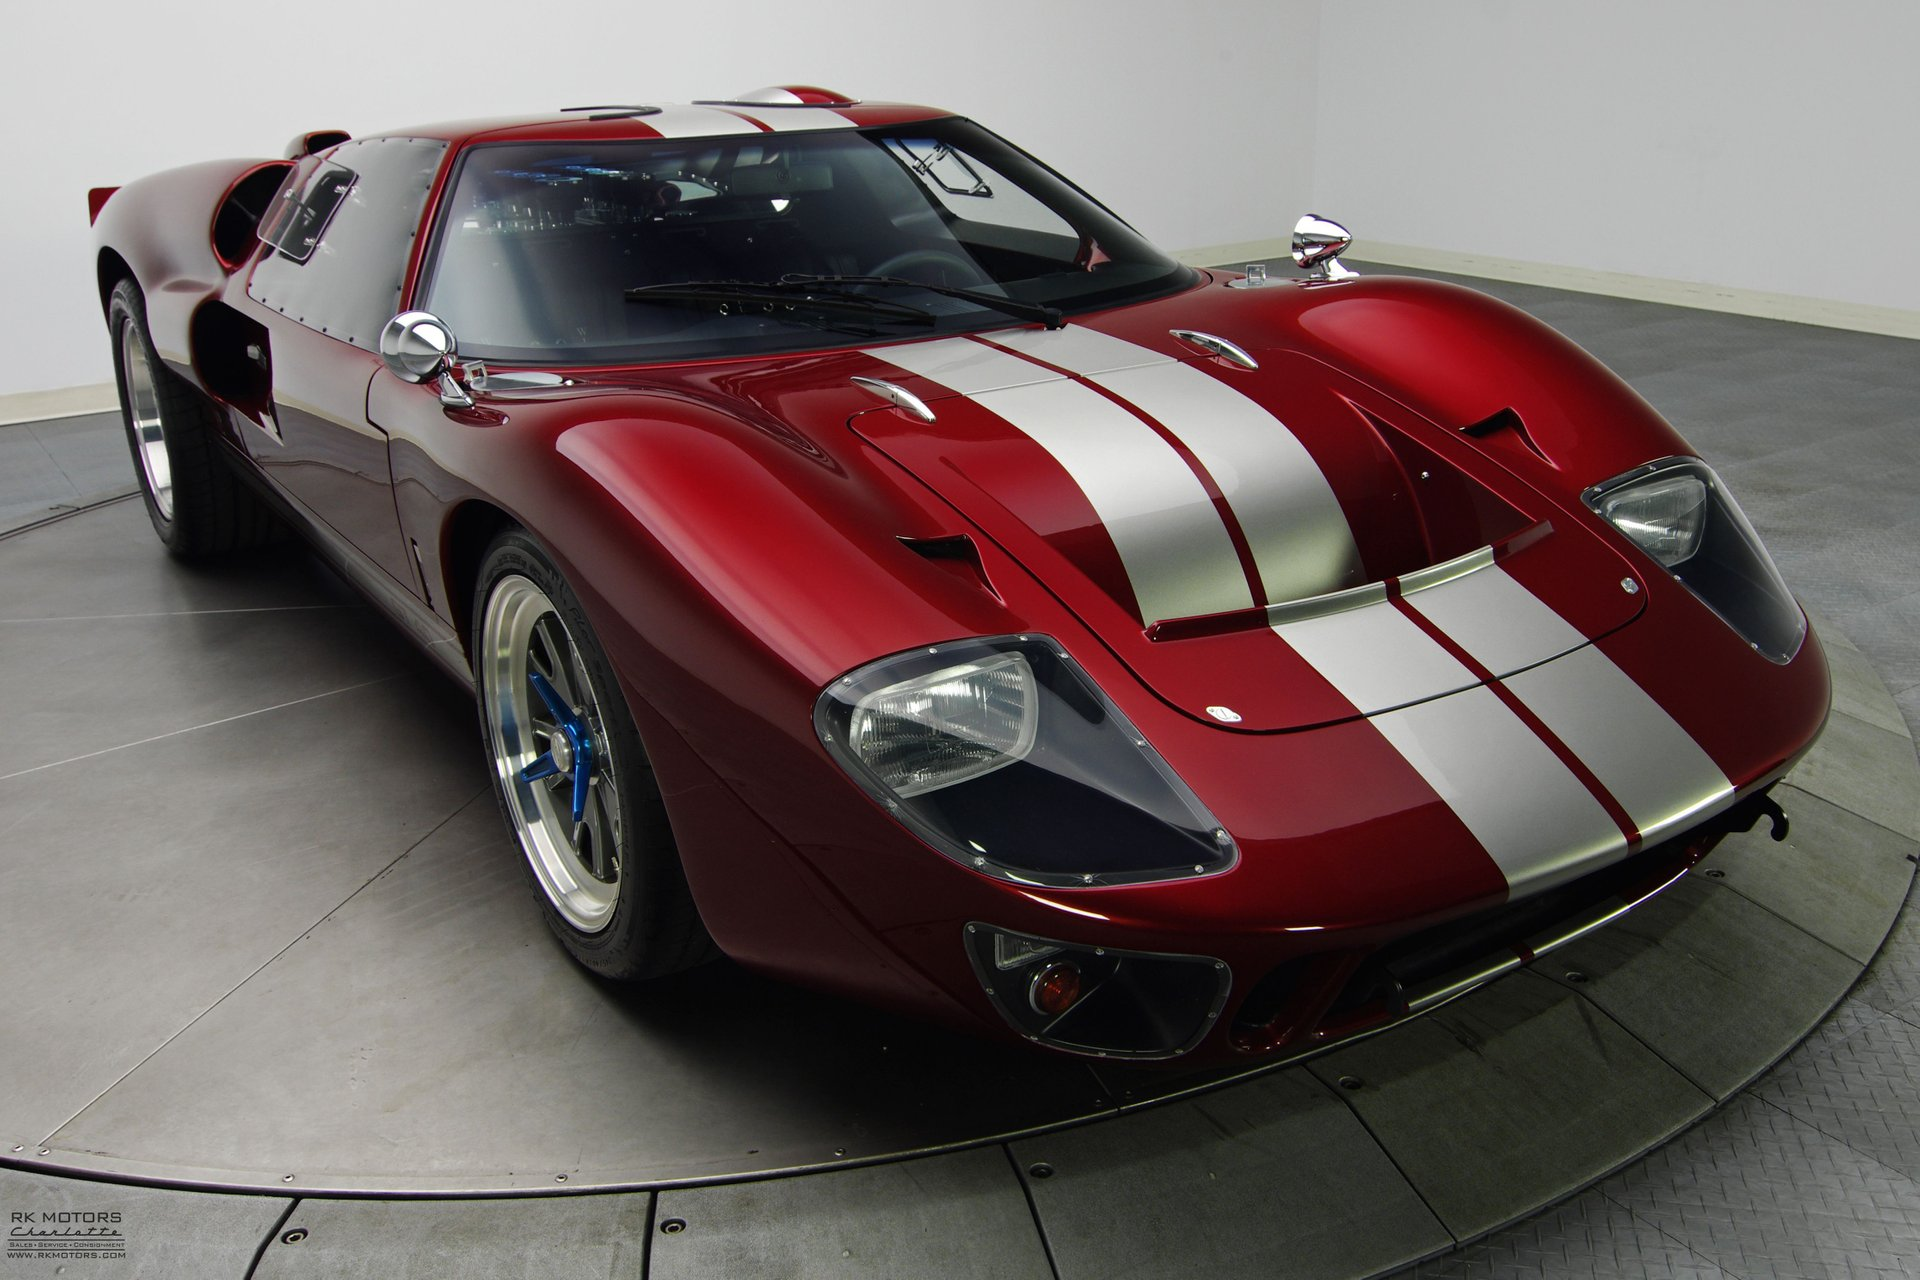 132793 1966 Ford Gt40 Mk Ii Rk Motors Classic Cars And Muscle Cars For Sale